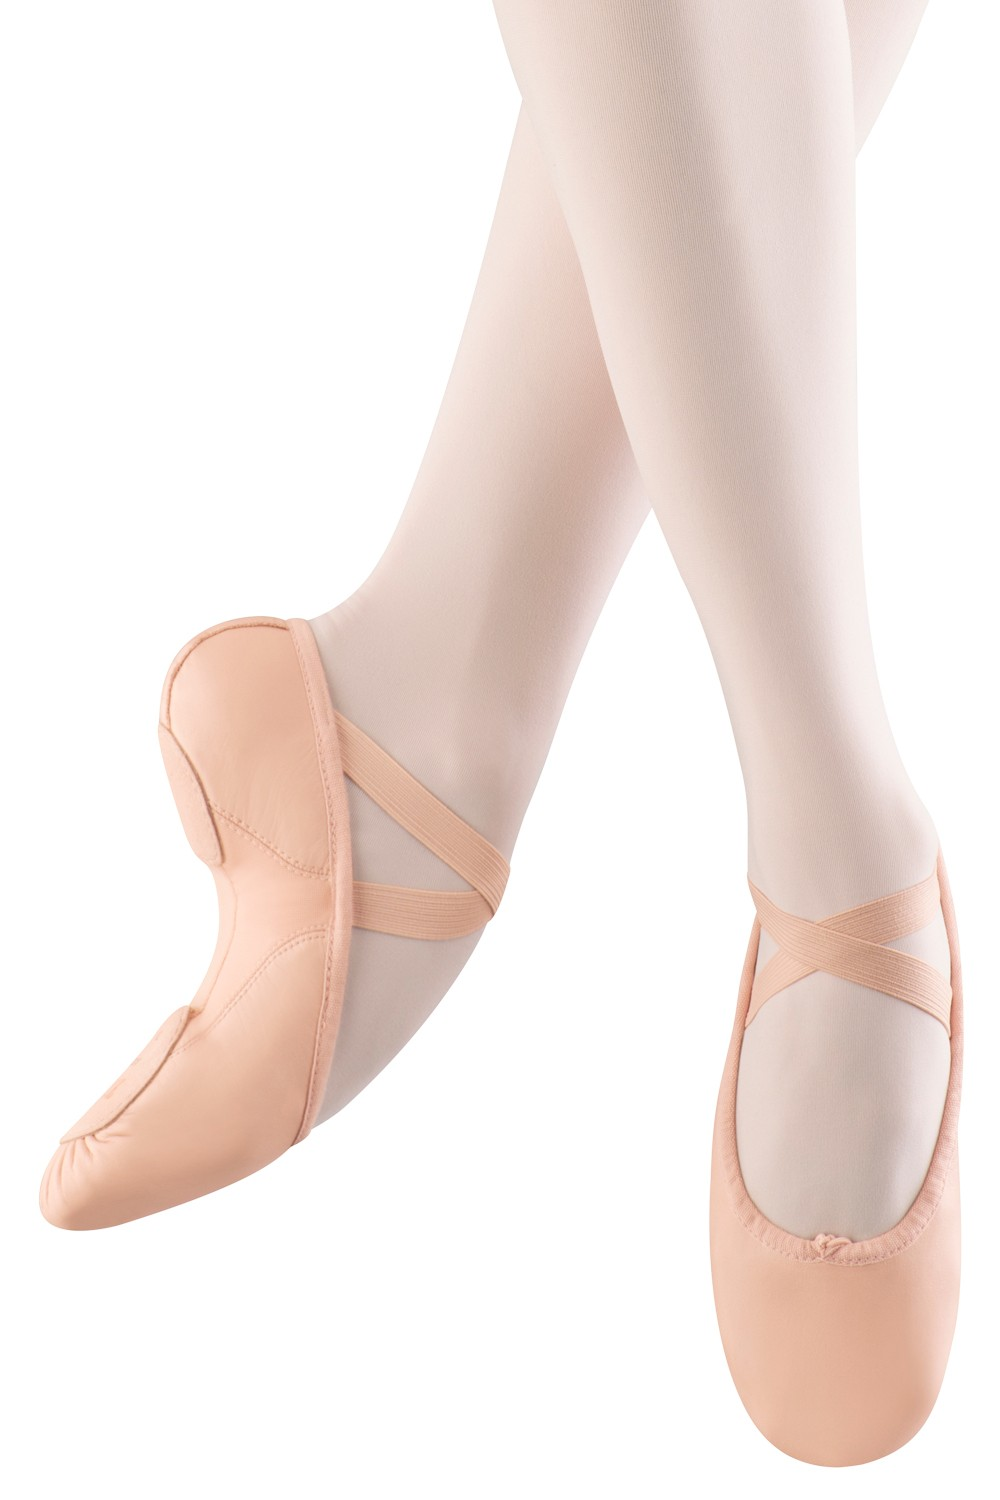 Proflex - Couro  Women's Ballet Shoes